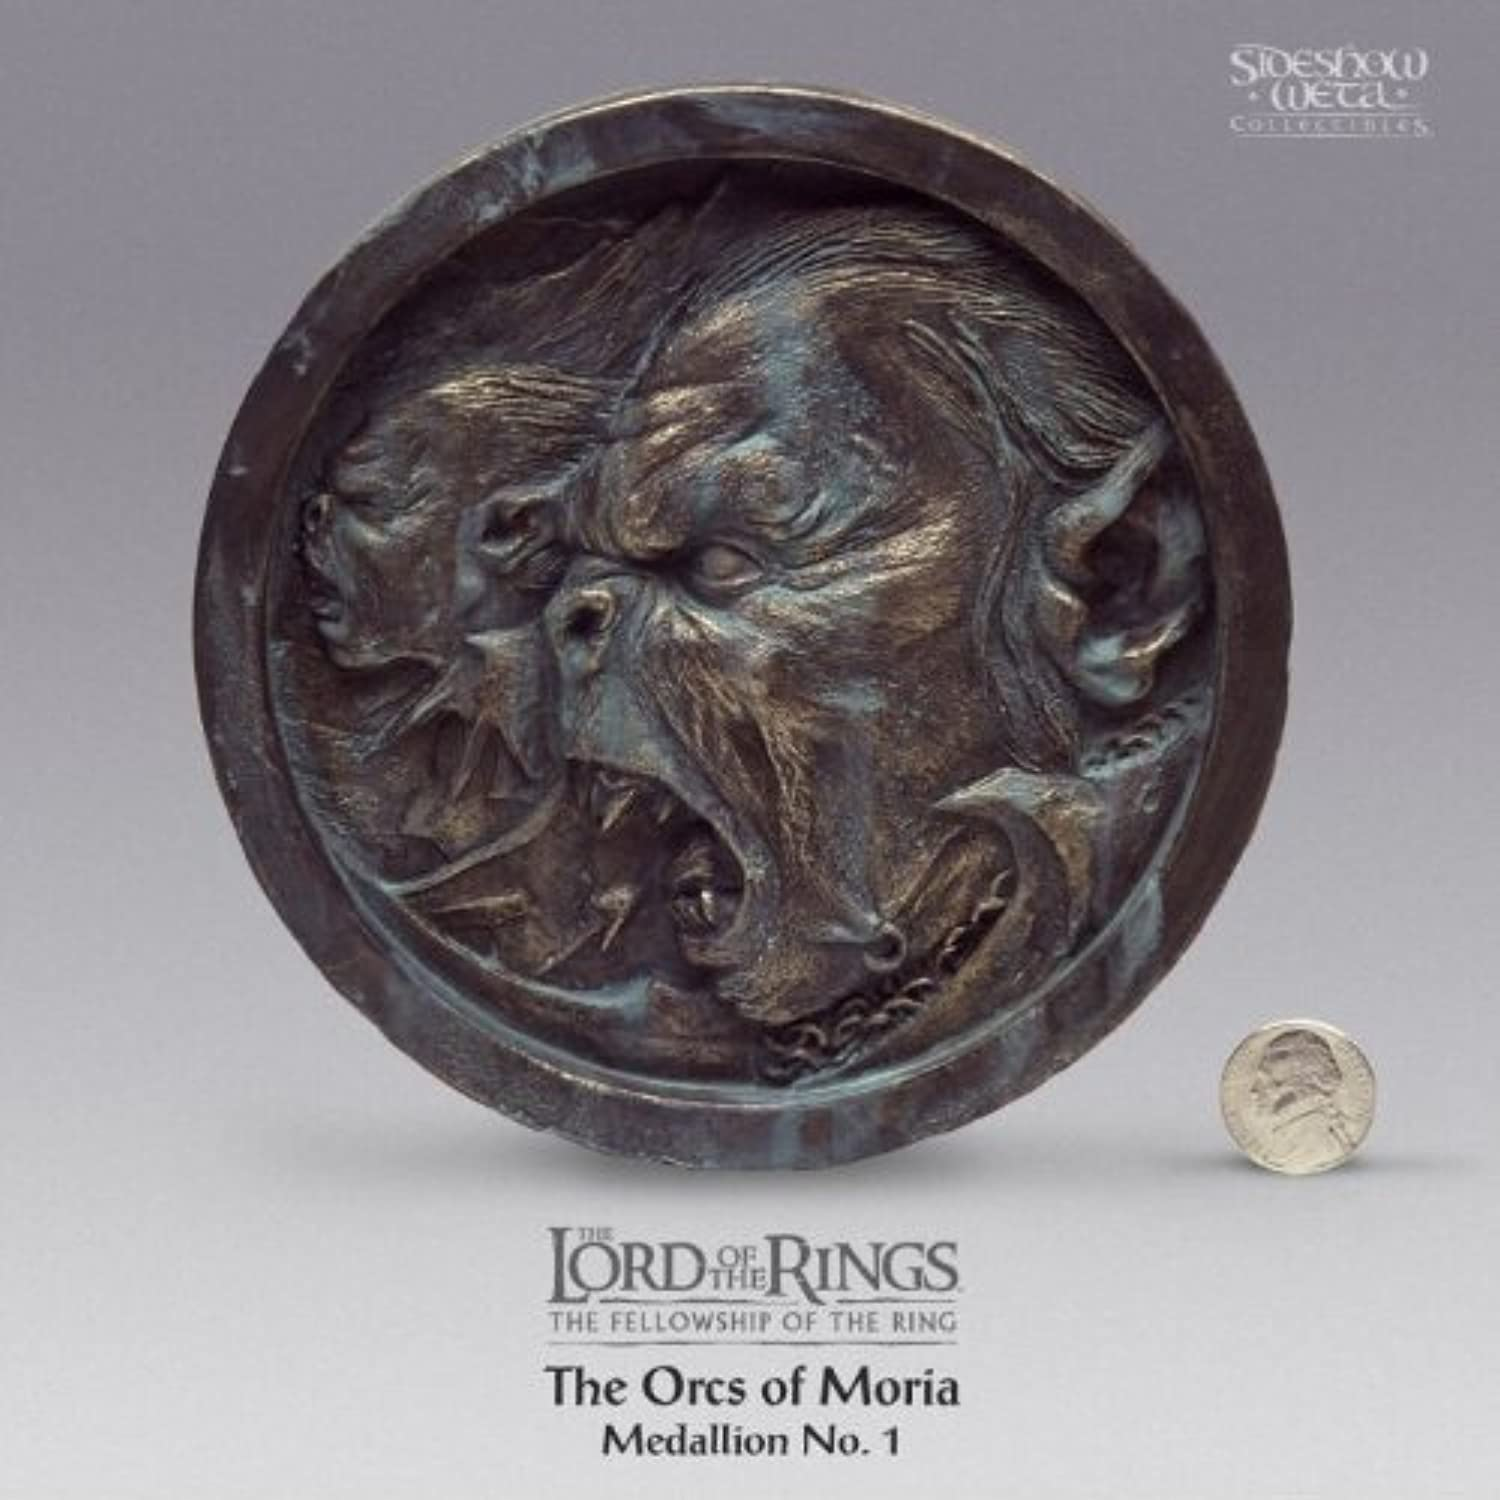 producto de calidad 'THE ORCS OF OF OF MORIA' The Lord of the Rings   The Fellowship of the Rings 2001 Limited Edition Polystone Medallion  1 of only 10,000  by Sideshow Collectibles  Seleccione de las marcas más nuevas como